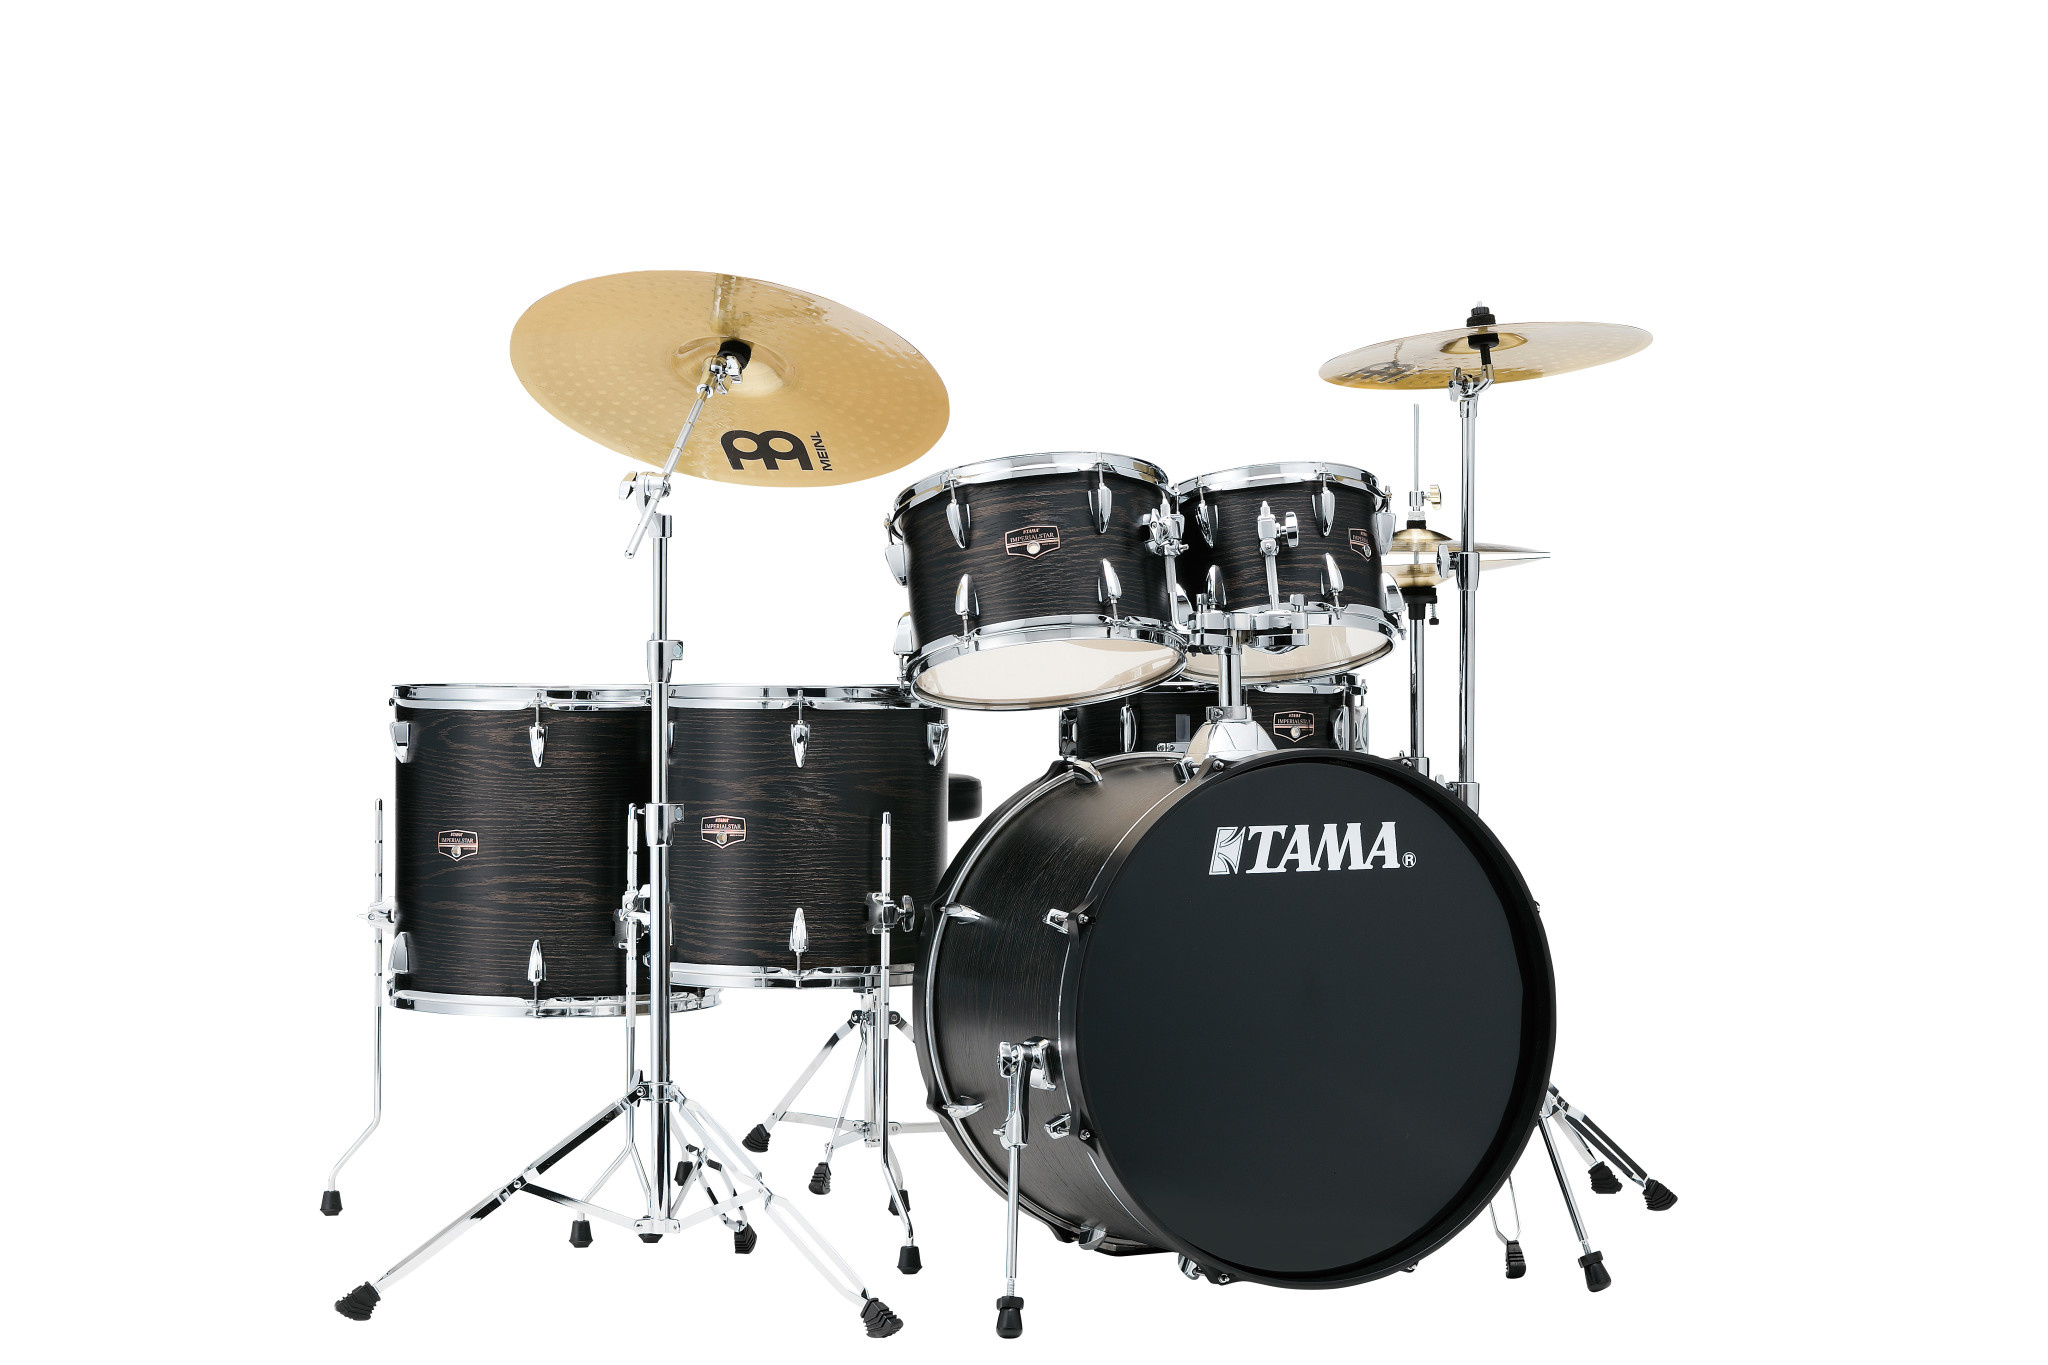 Tama Imperialstar 6pc Drum Set w/ 22 in Bass Drum and Meinl HCS Cymbals